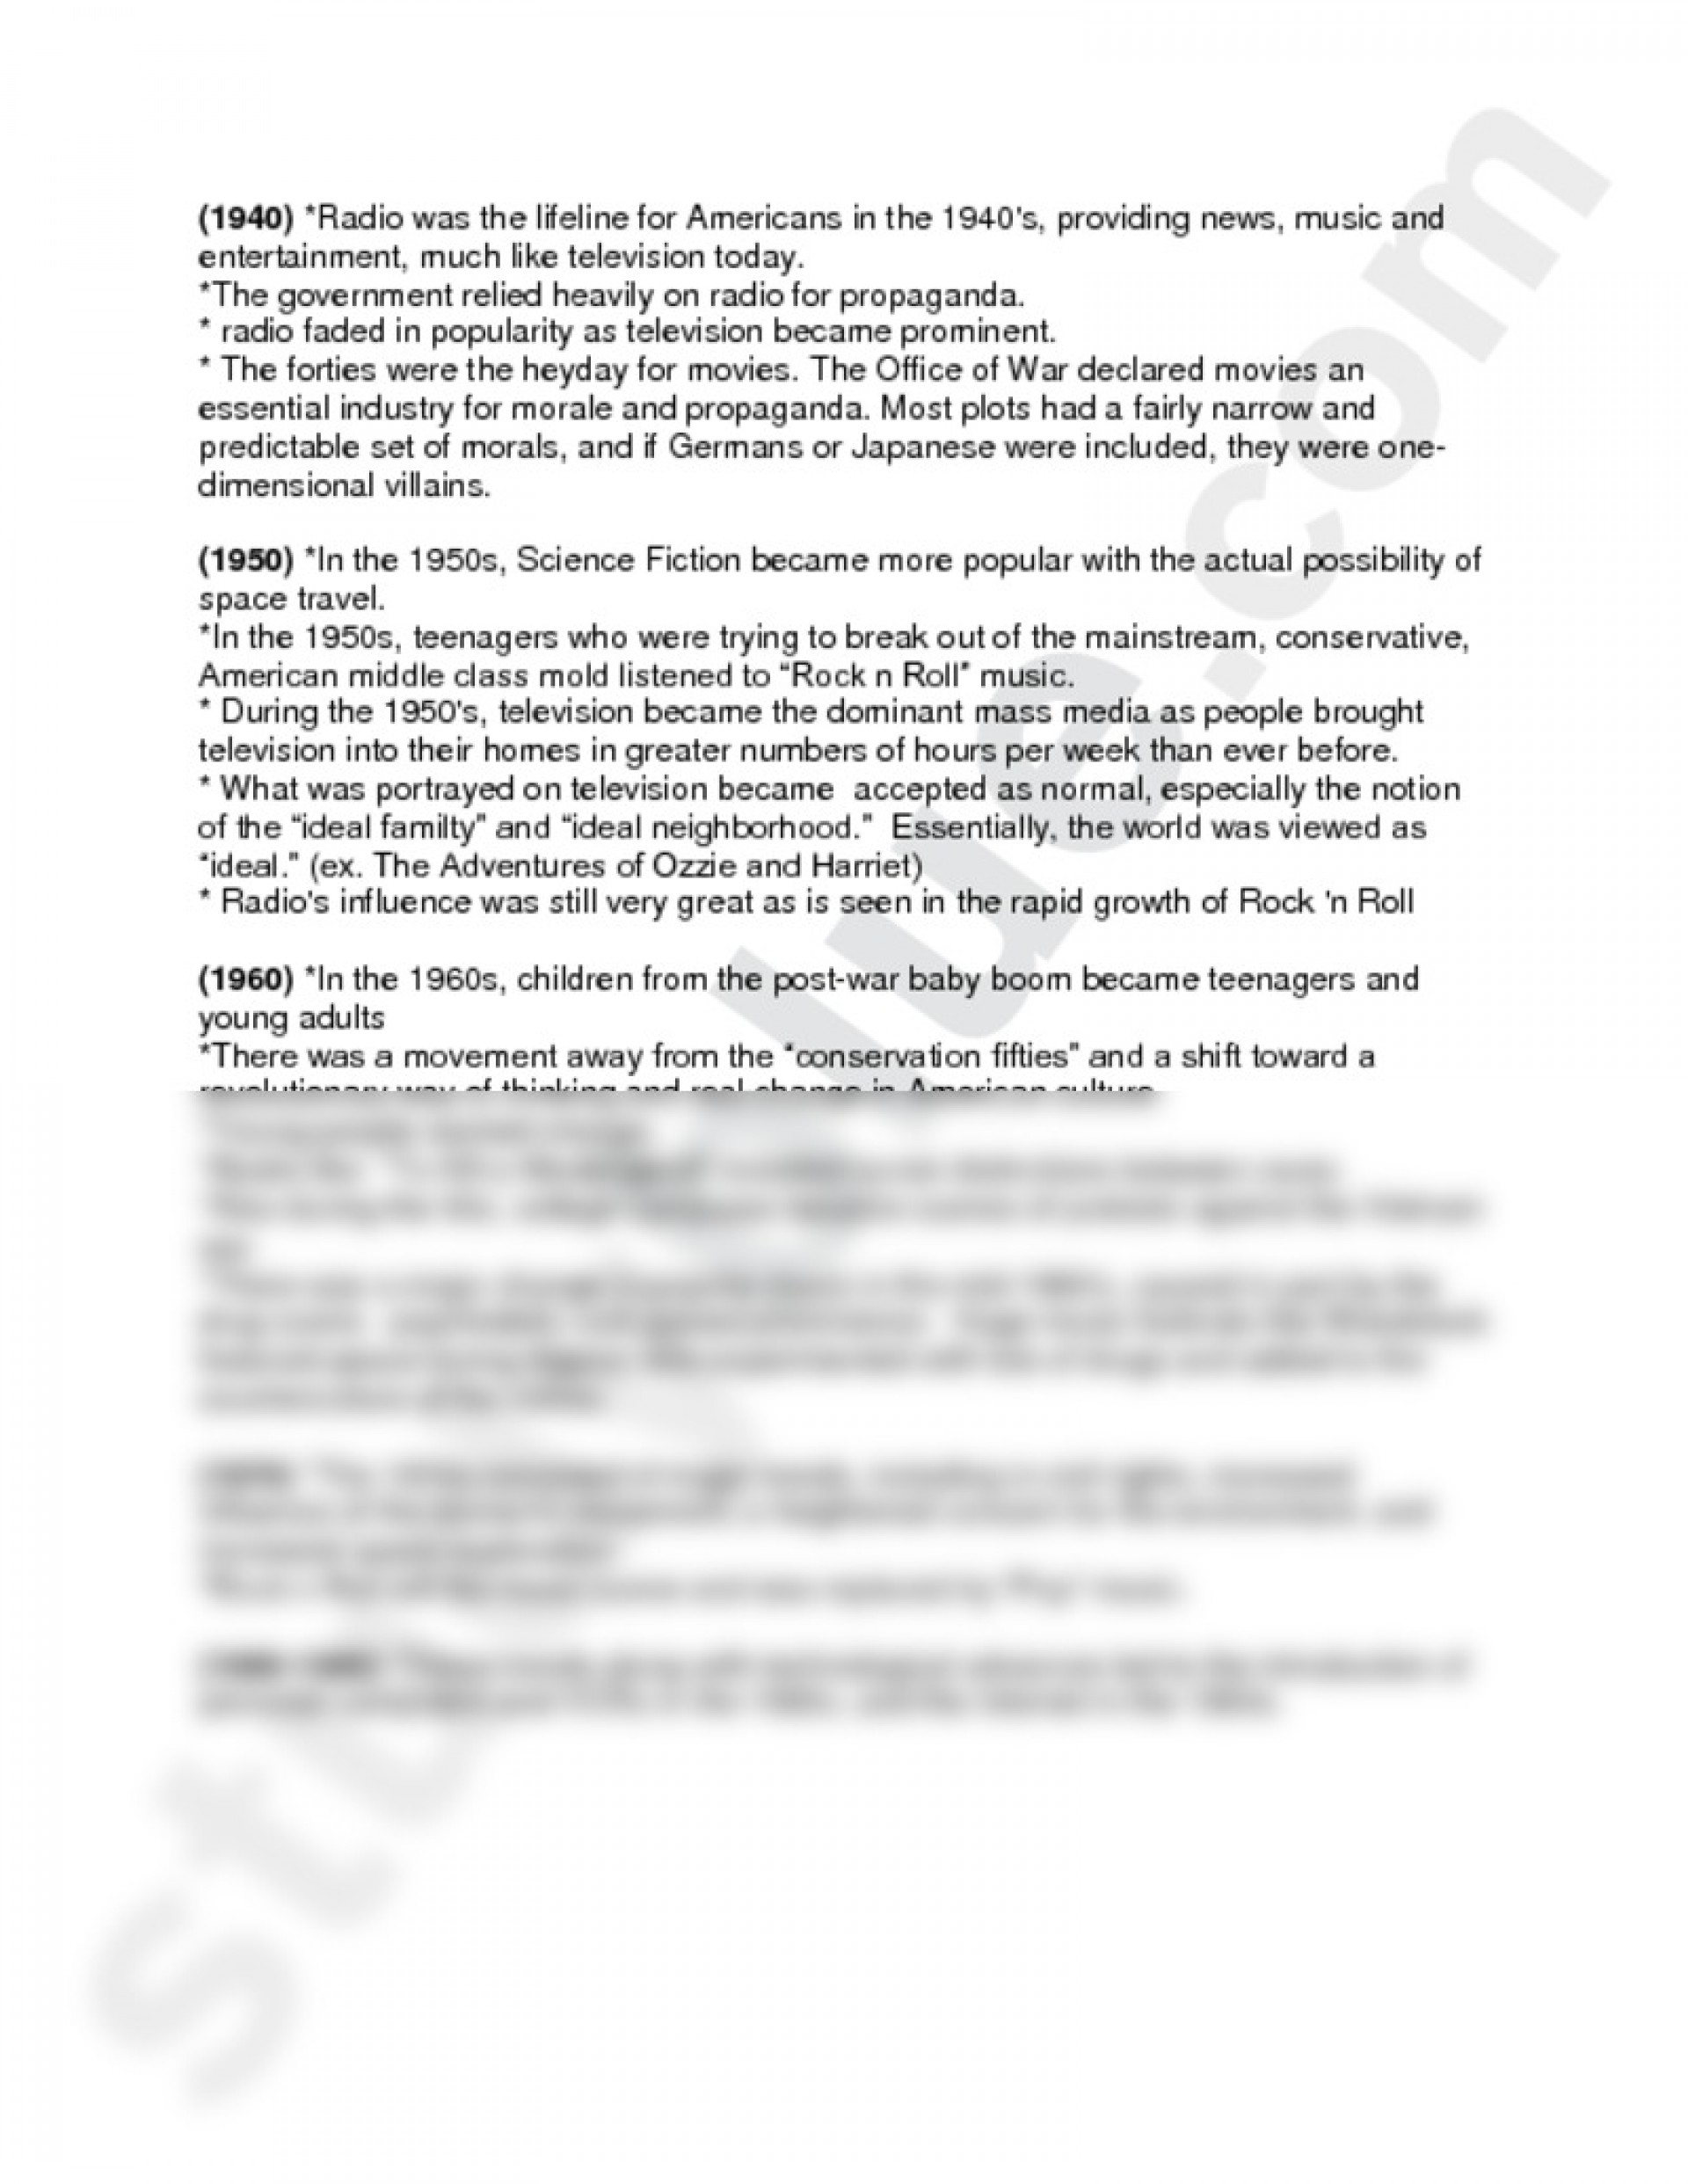 008 Preview0 Issa Final Exam Essay Answers Awesome 1920